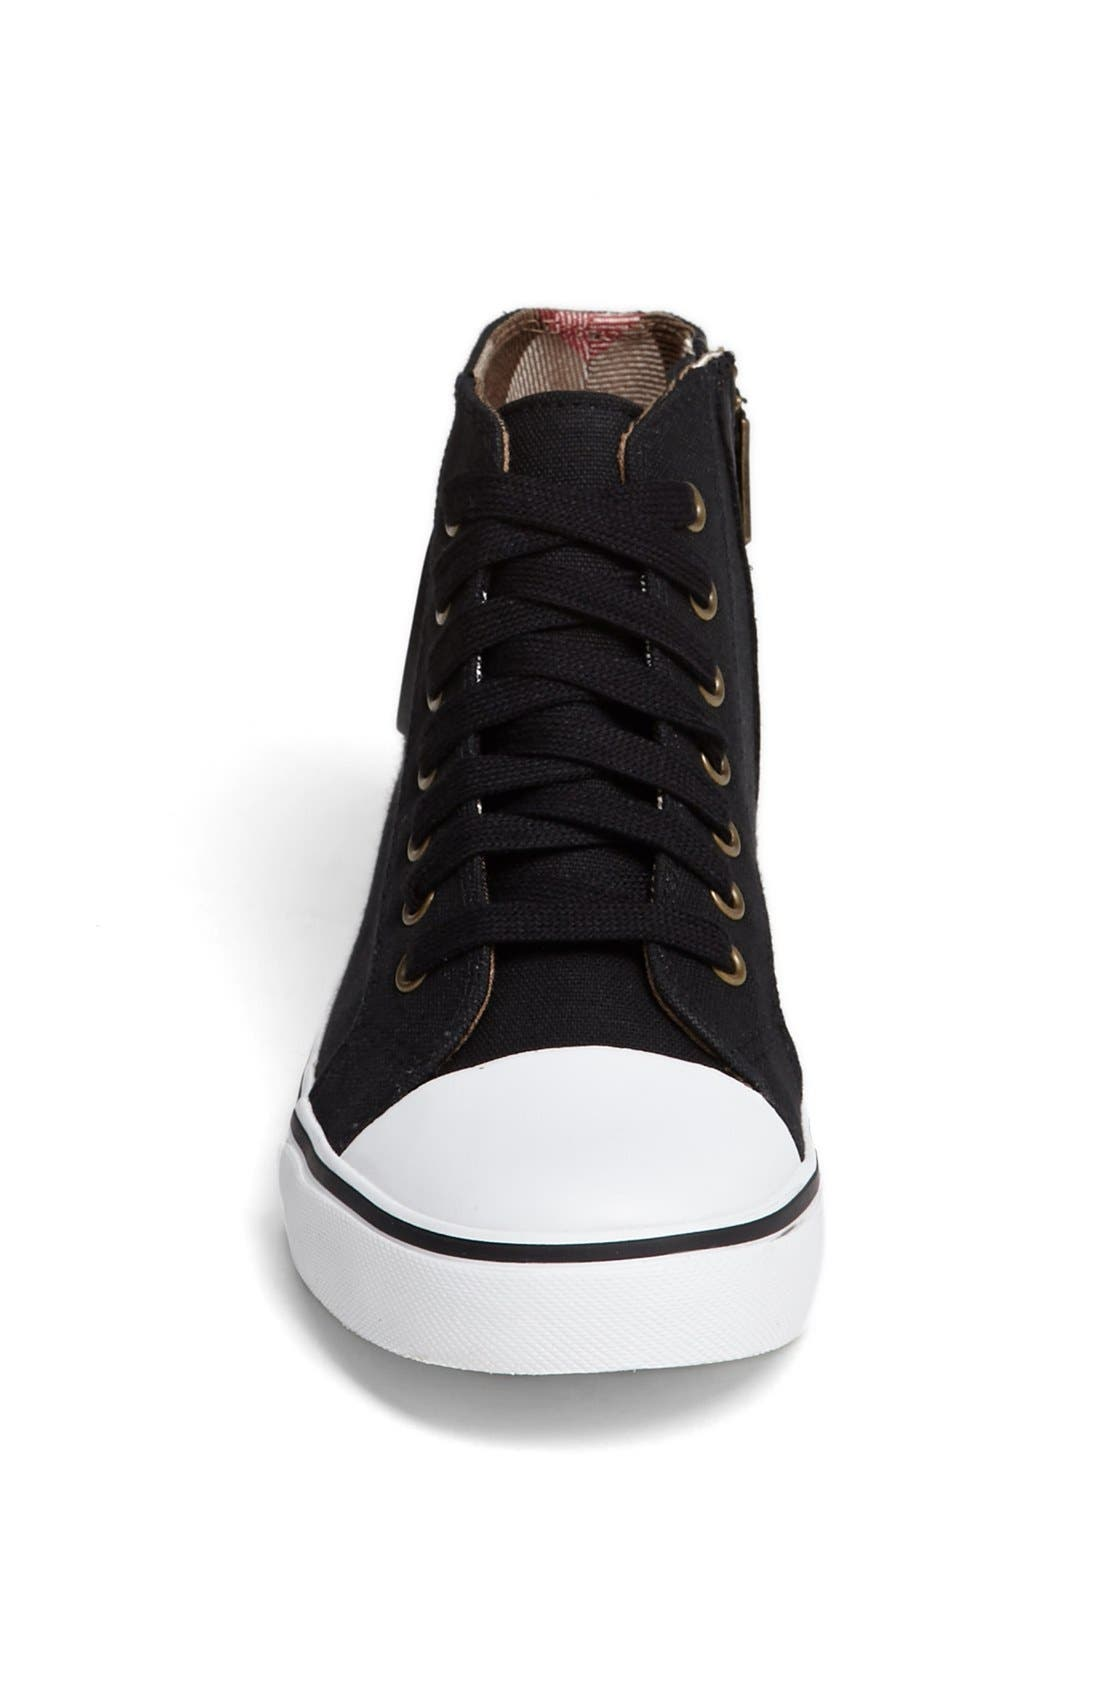 Alternate Image 3  - Burberry 'Blaze' High Top Sneaker (Walker, Toddler & Little Kid)